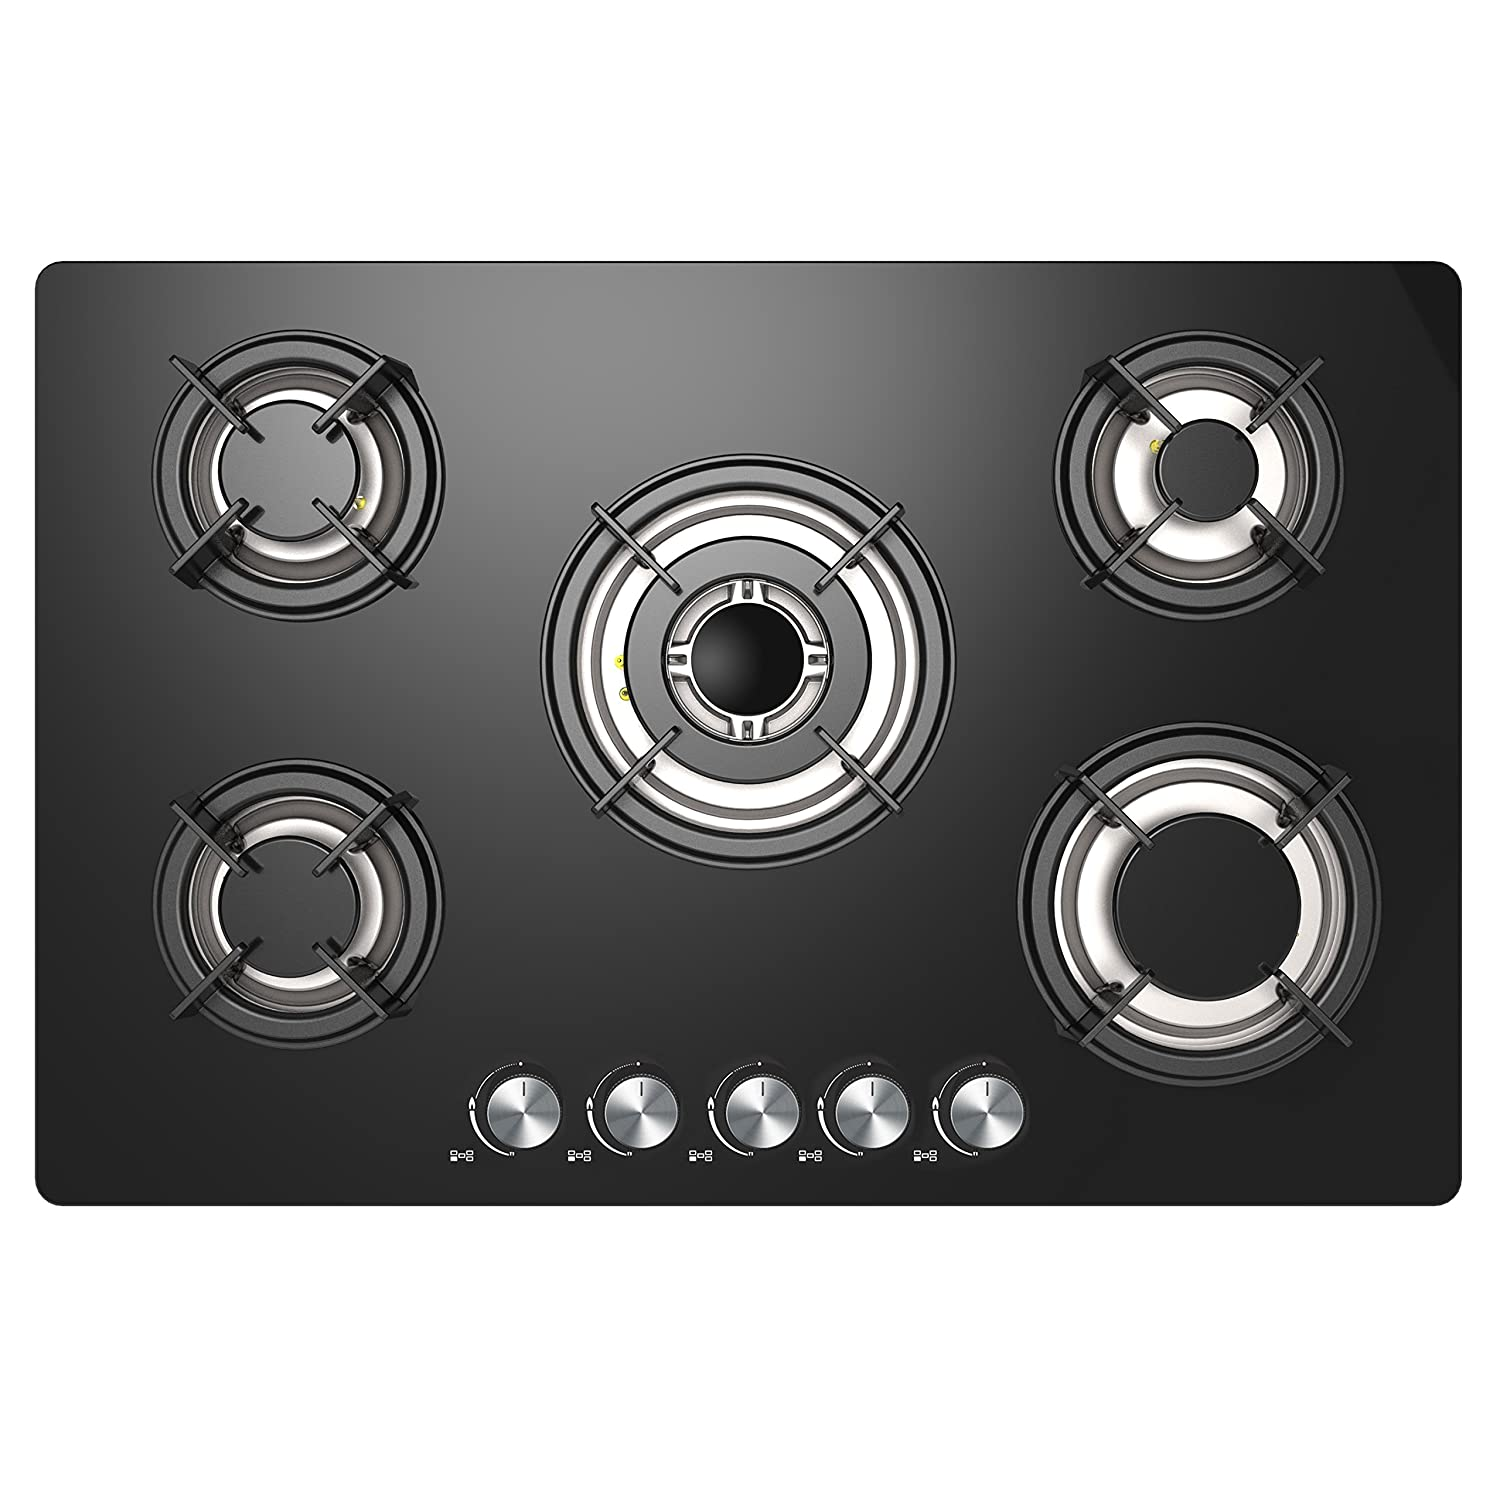 Cookology GGH770BK Gas-on-Glass Hob | 77cm Built-in 5 Burner Gas Hob in Black Glass & Round Cast-Iron Pan Supports